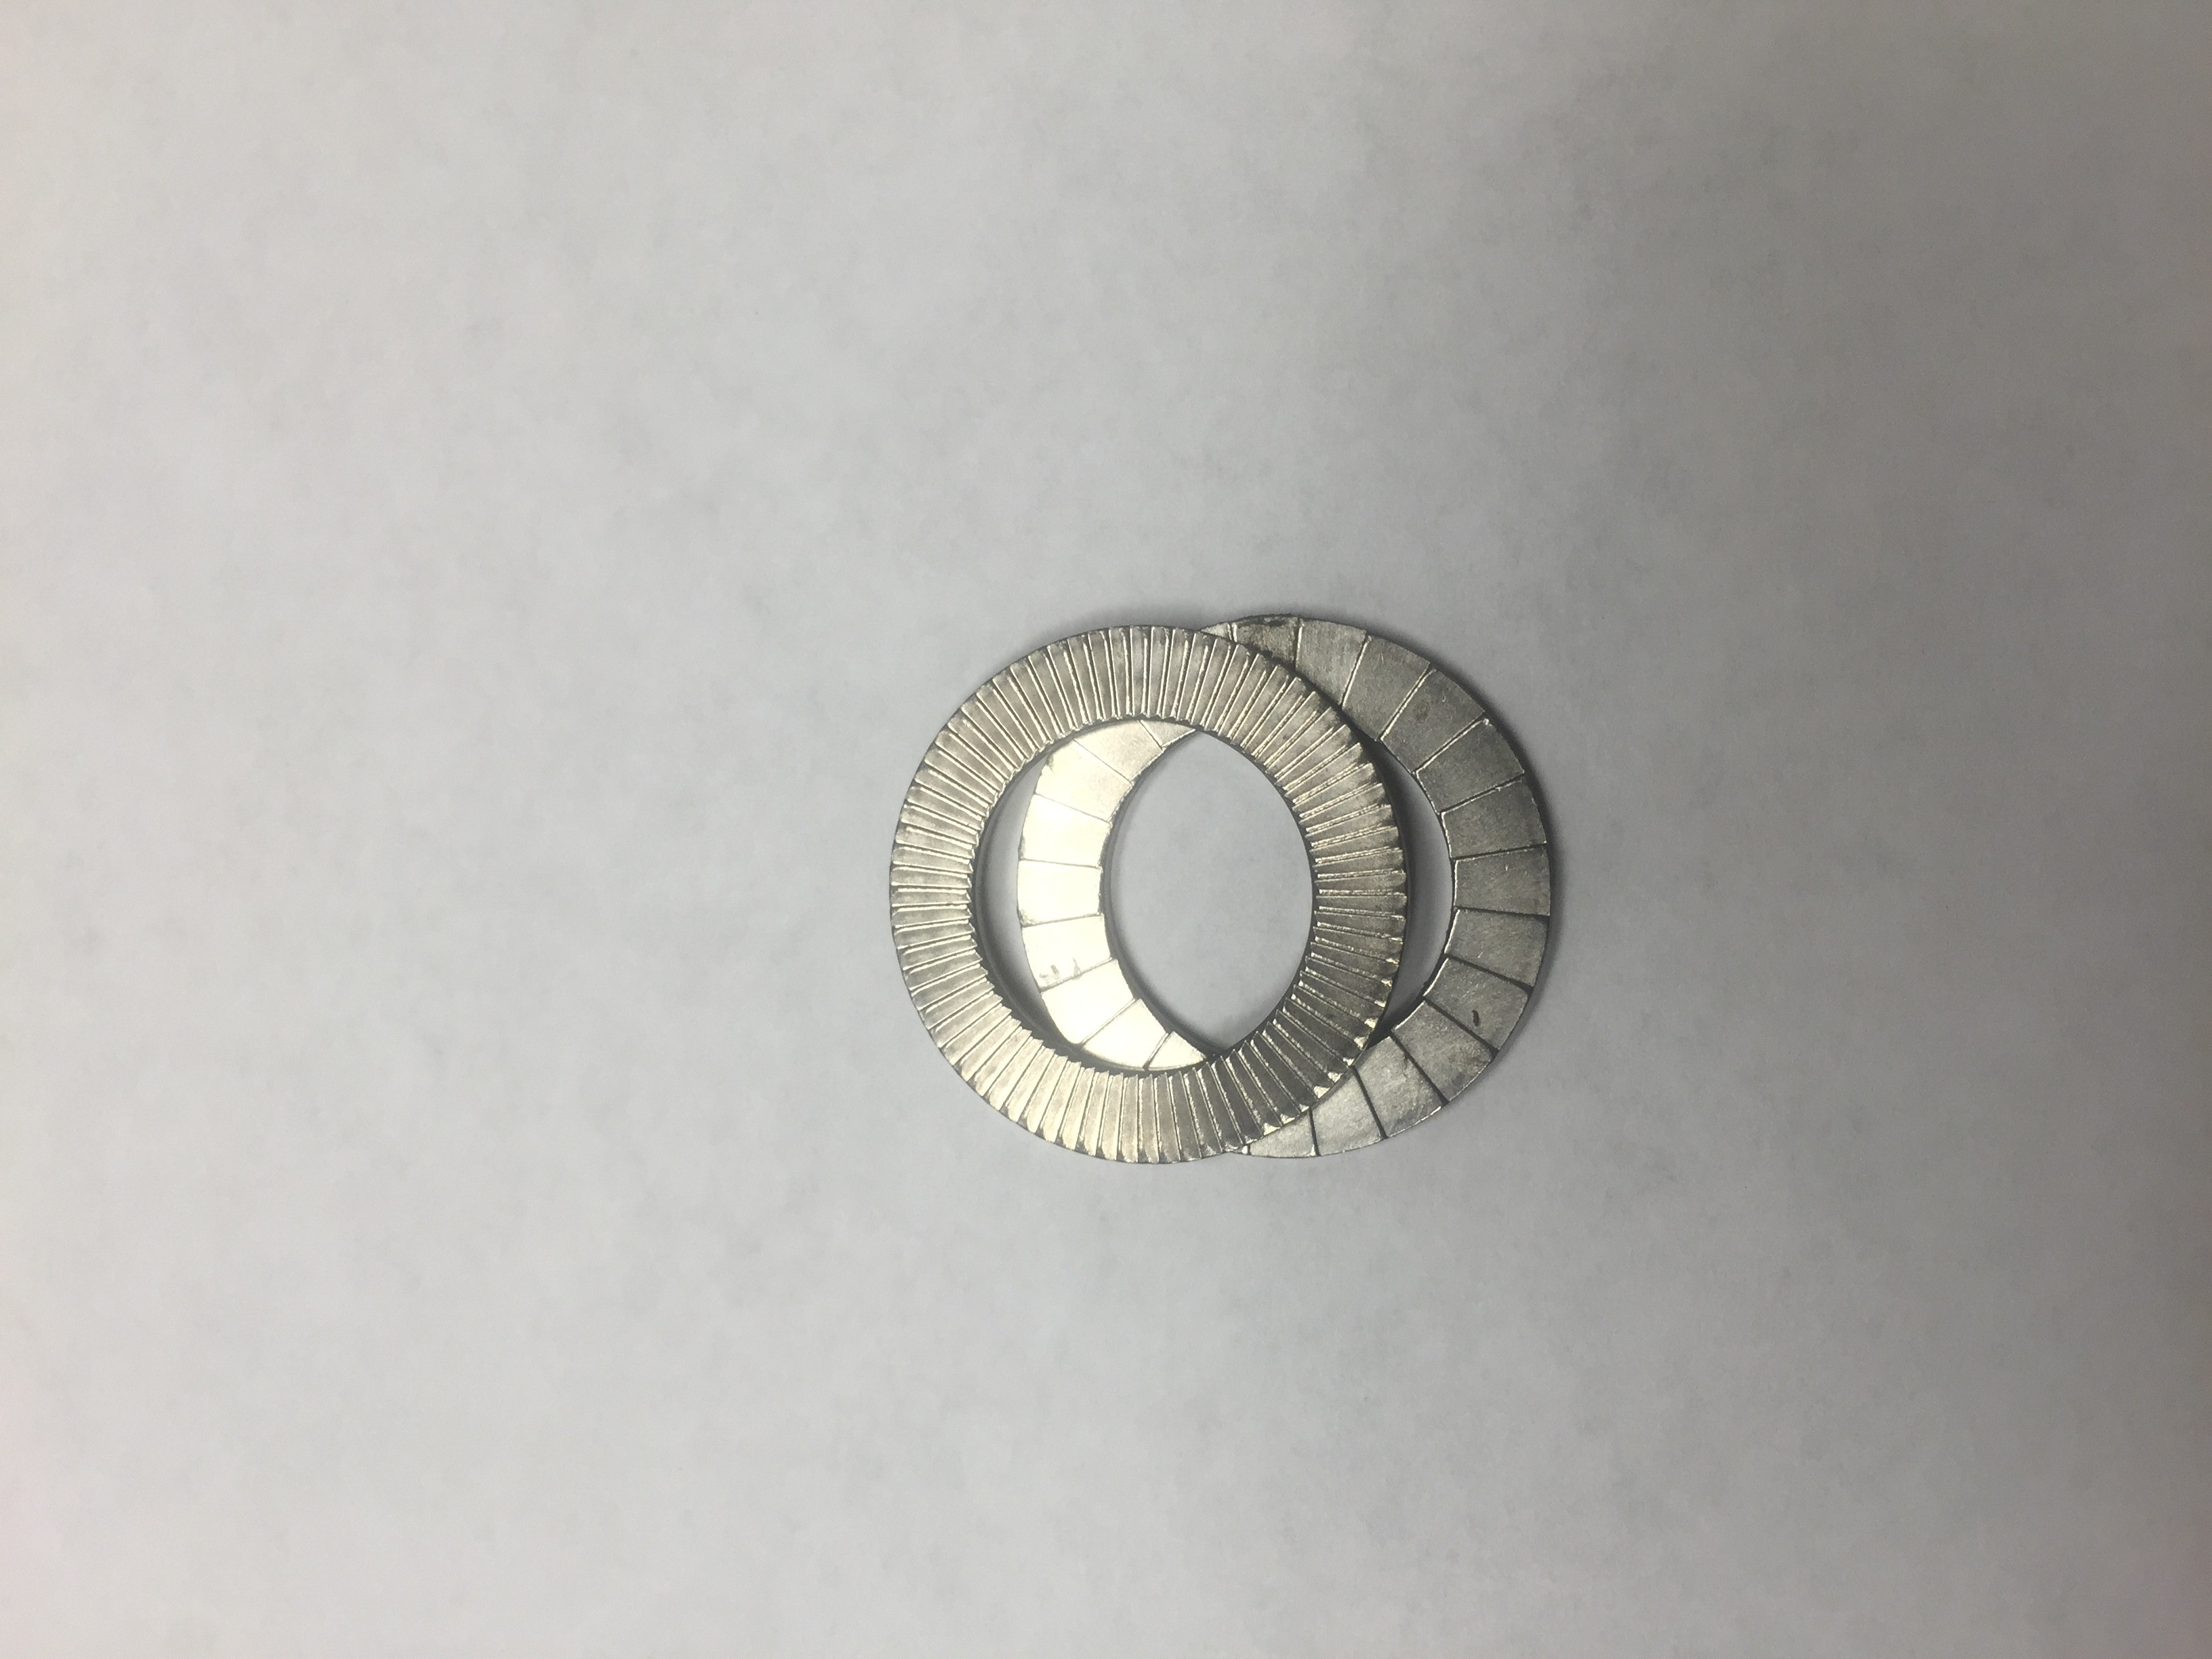 7/16 316 STAINLESS STEEL NORD-LOCK WASHER